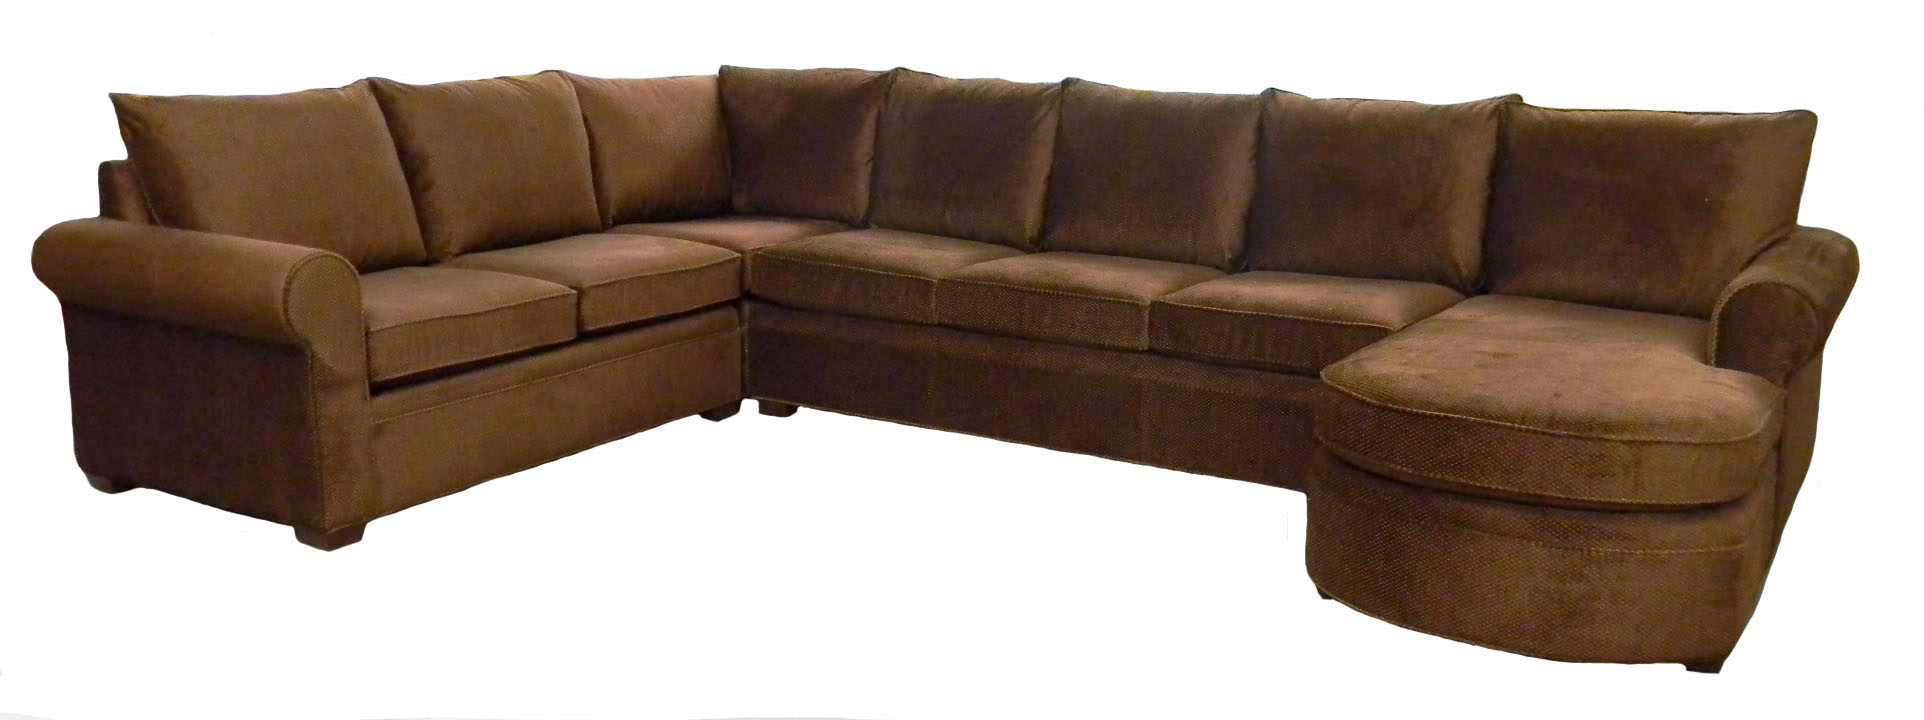 s Examples Custom Sectional Sofas Carolina Chair furniture